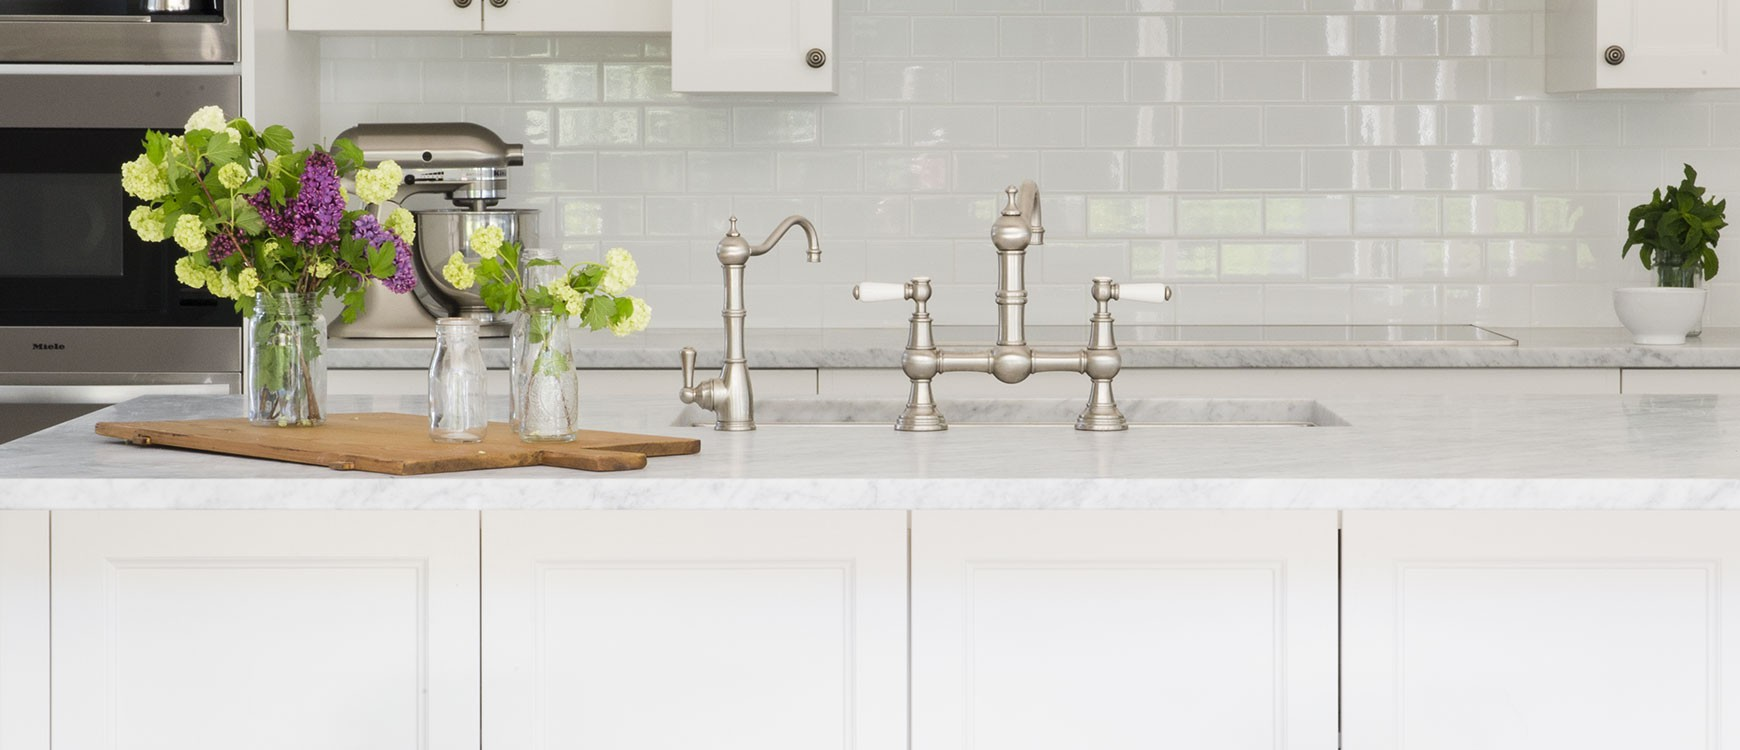 Traditional Taps Australia Buy Traditional Kitchen Taps Online Quality Stylish Tapware